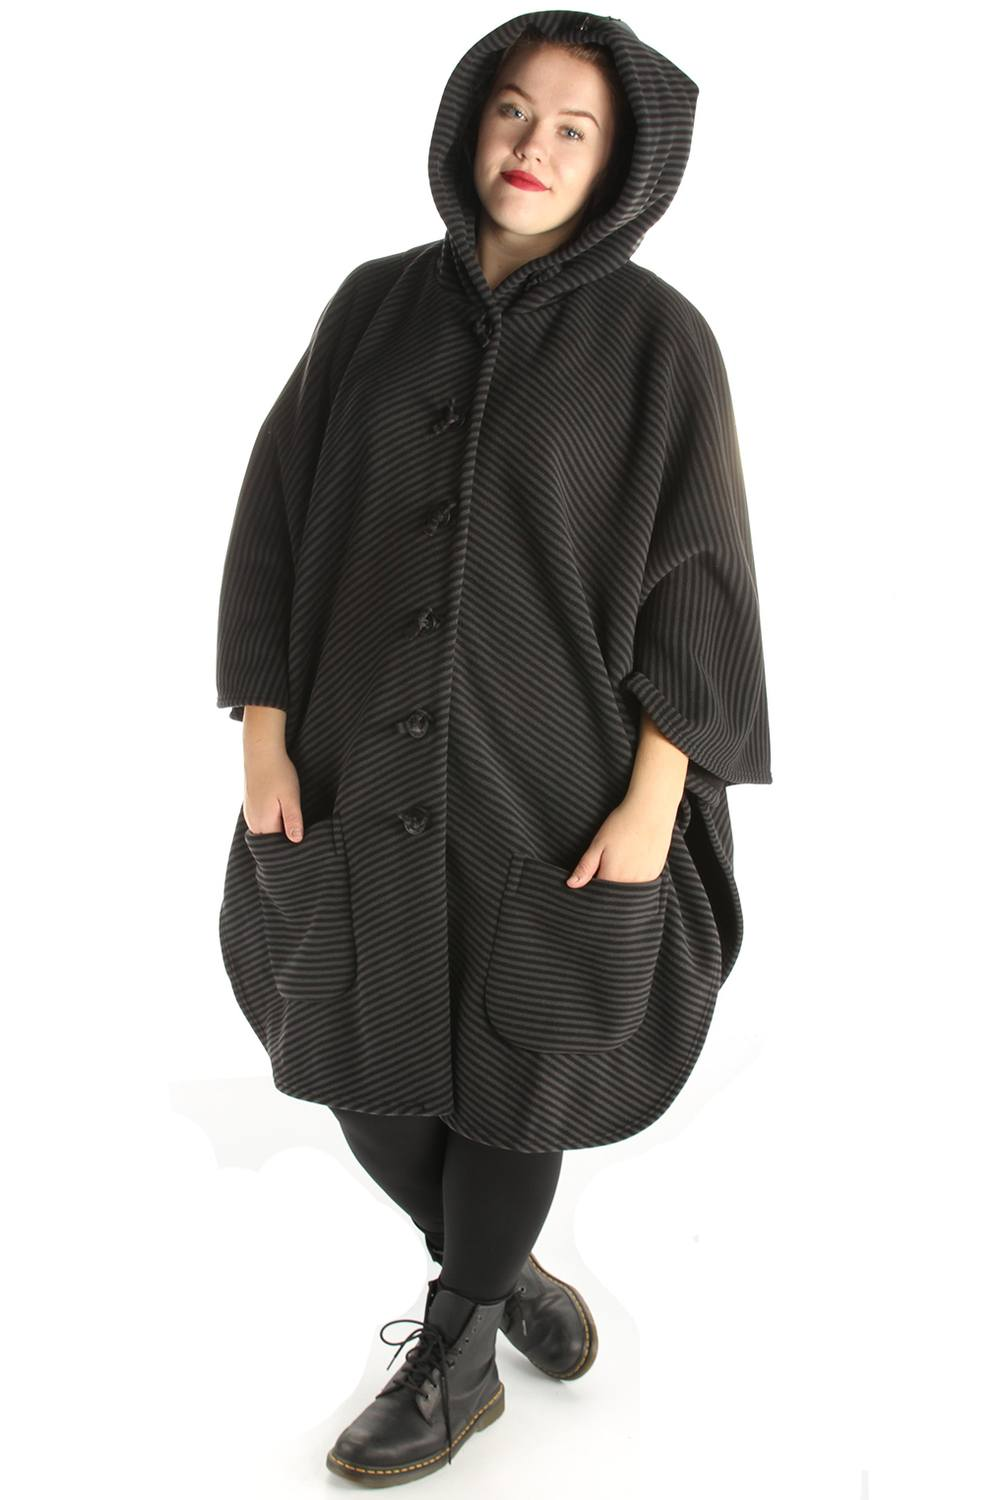 Jas Boris fleece wijd poncho capu